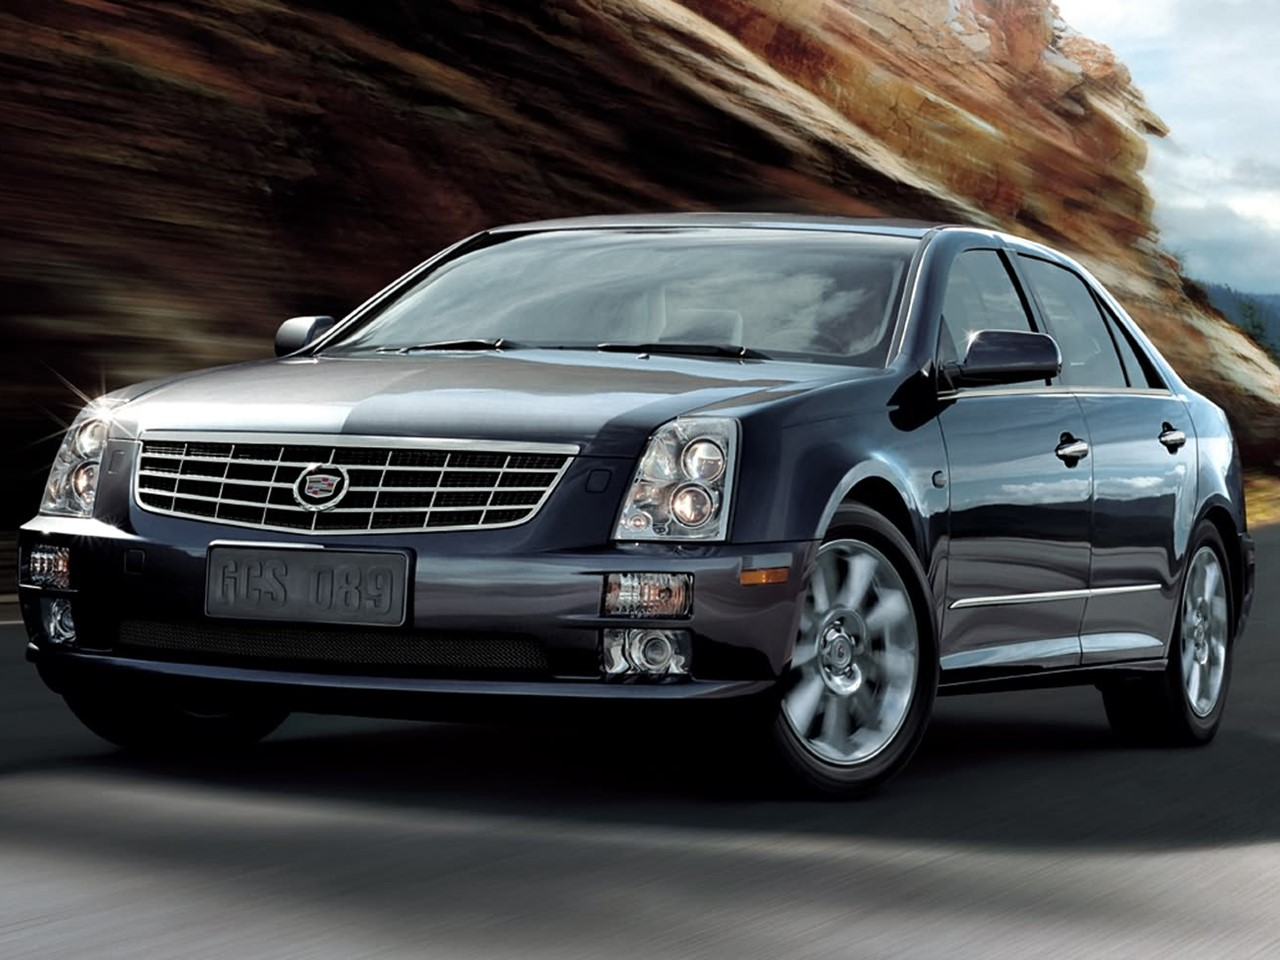 2007 cadillac sls notoriousluxury. Black Bedroom Furniture Sets. Home Design Ideas